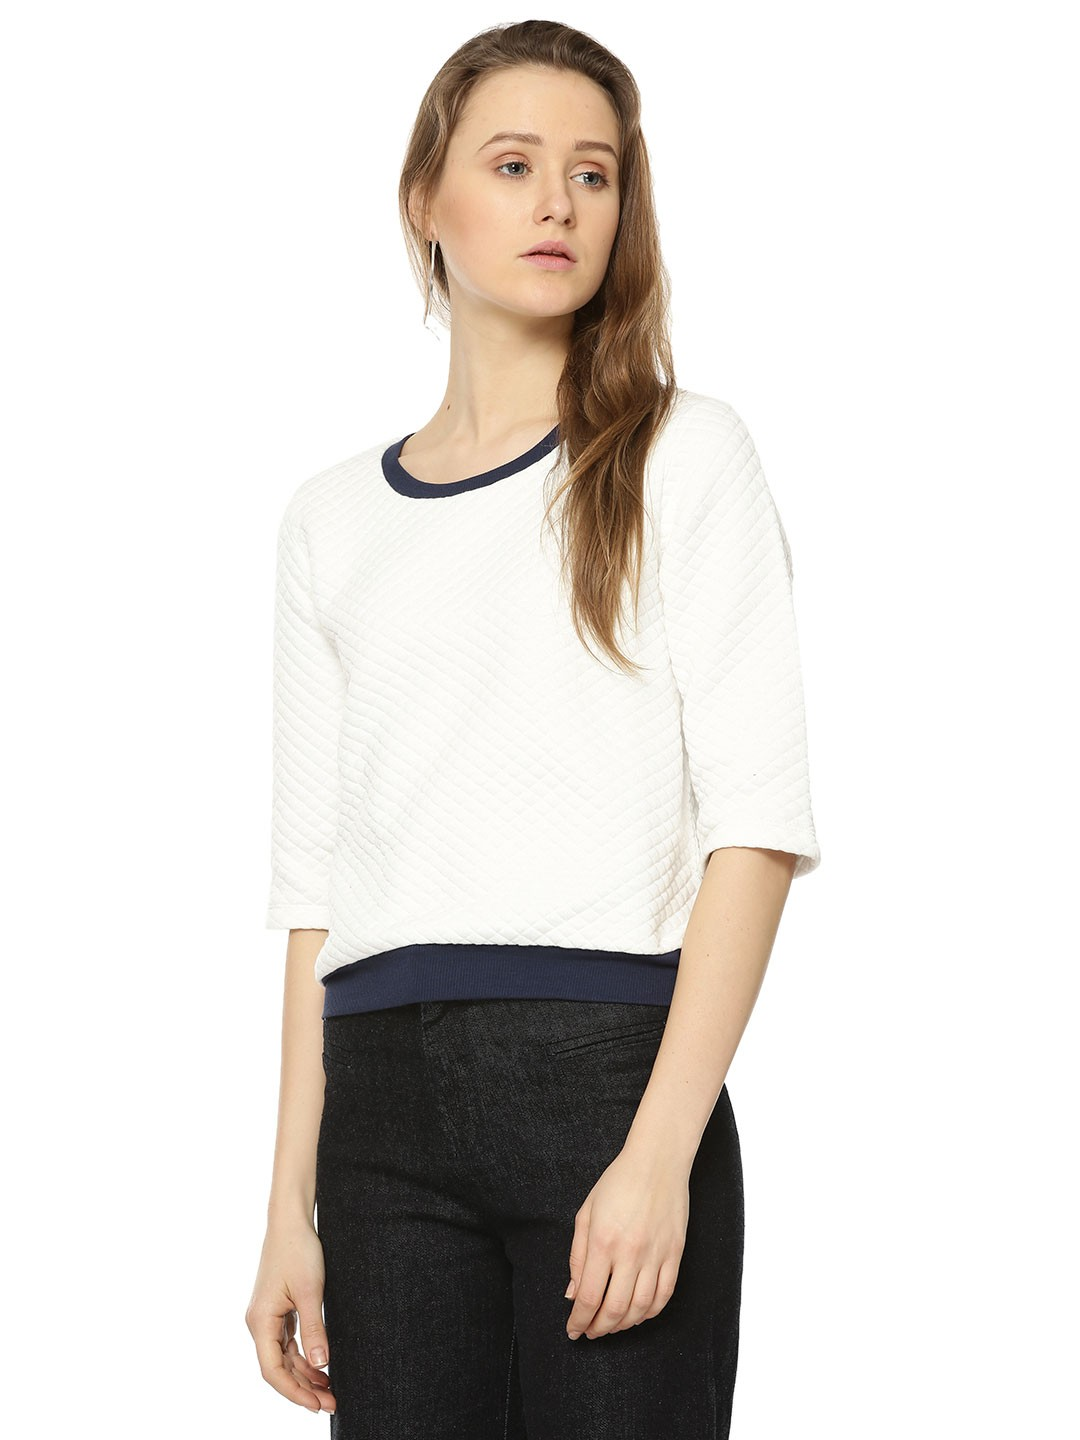 Buy Femella Front Ruffle Top For Women: Buy FEMELLA White Cropped Quilted Sweatshirt For Women